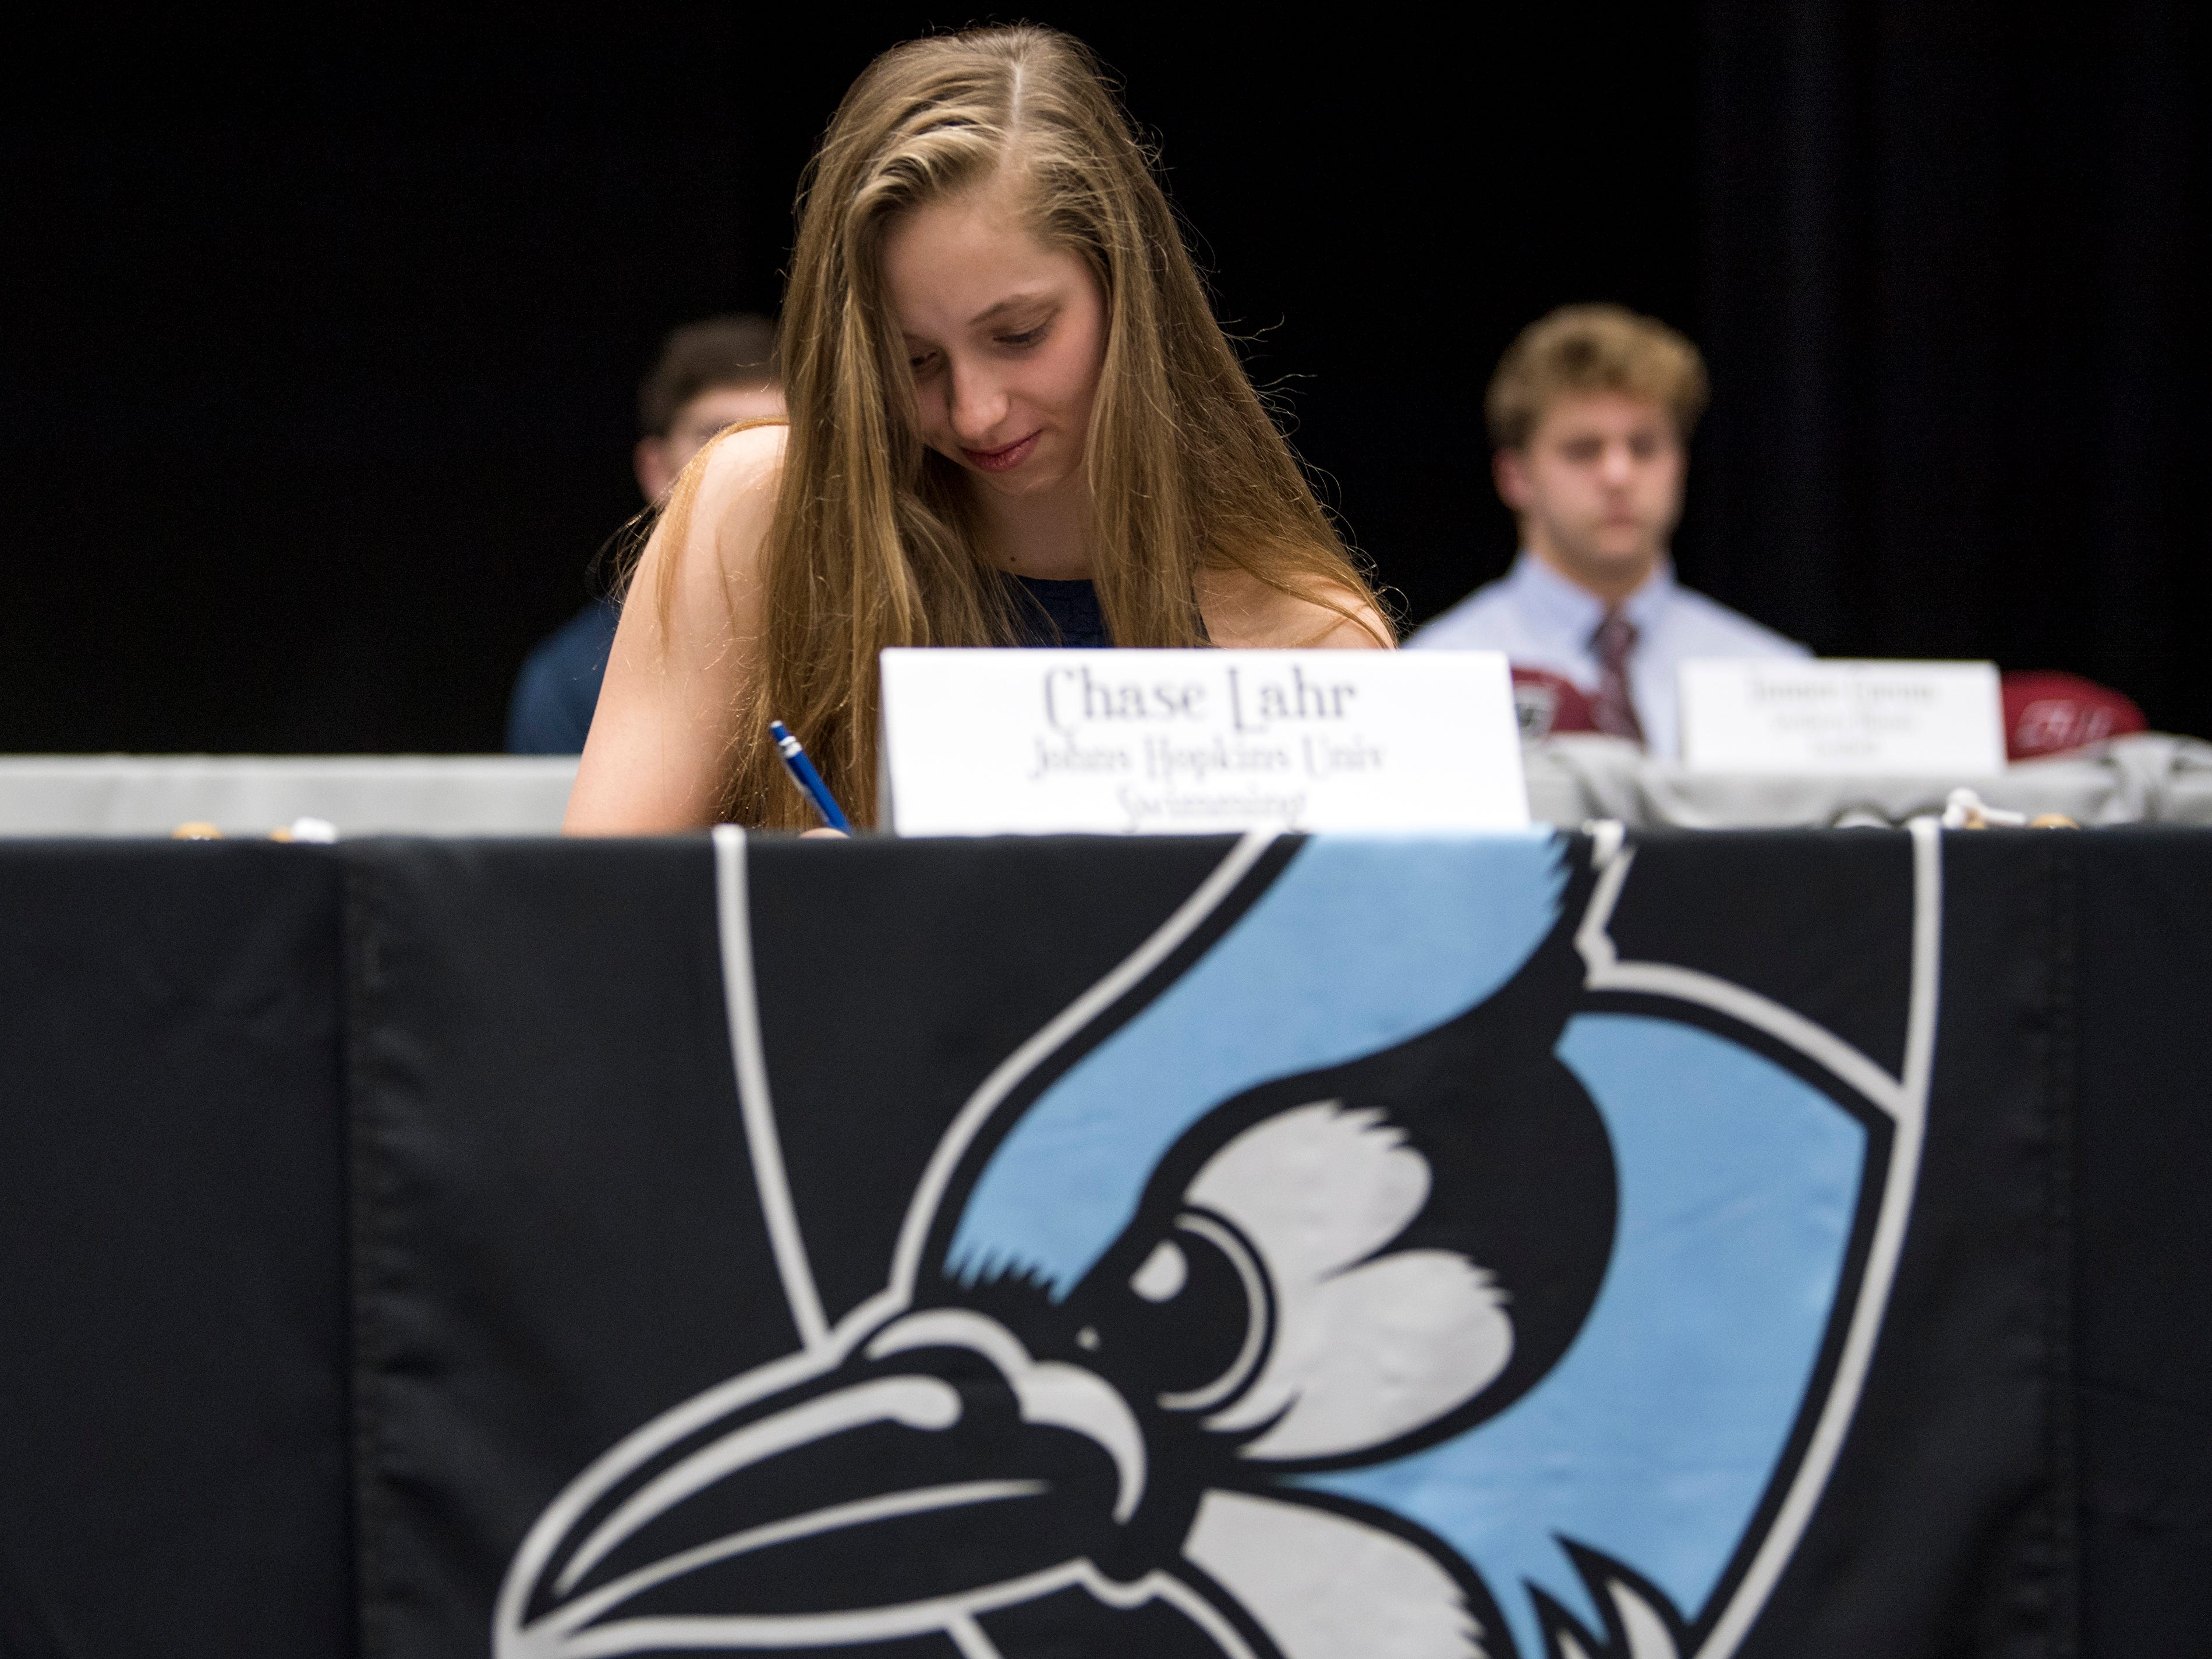 Farragut swimmer Chase Lahr signs with Johns Hopkins University during a National Signing Day event at Farragut High's auditorium on Wednesday, February 6, 2019.